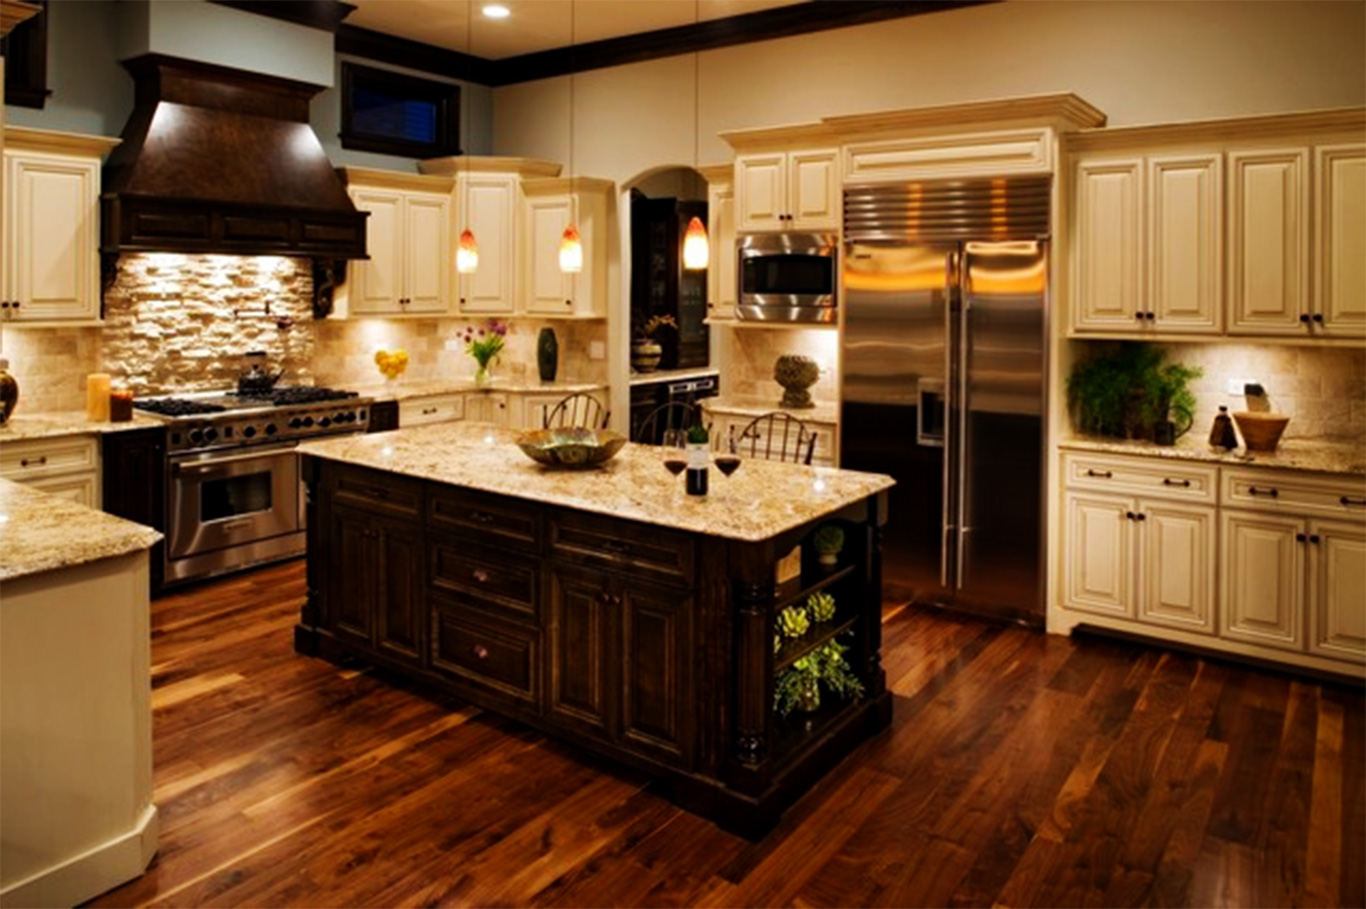 11 awesome type of kitchen design ideas - Kitchen remodel designs ...